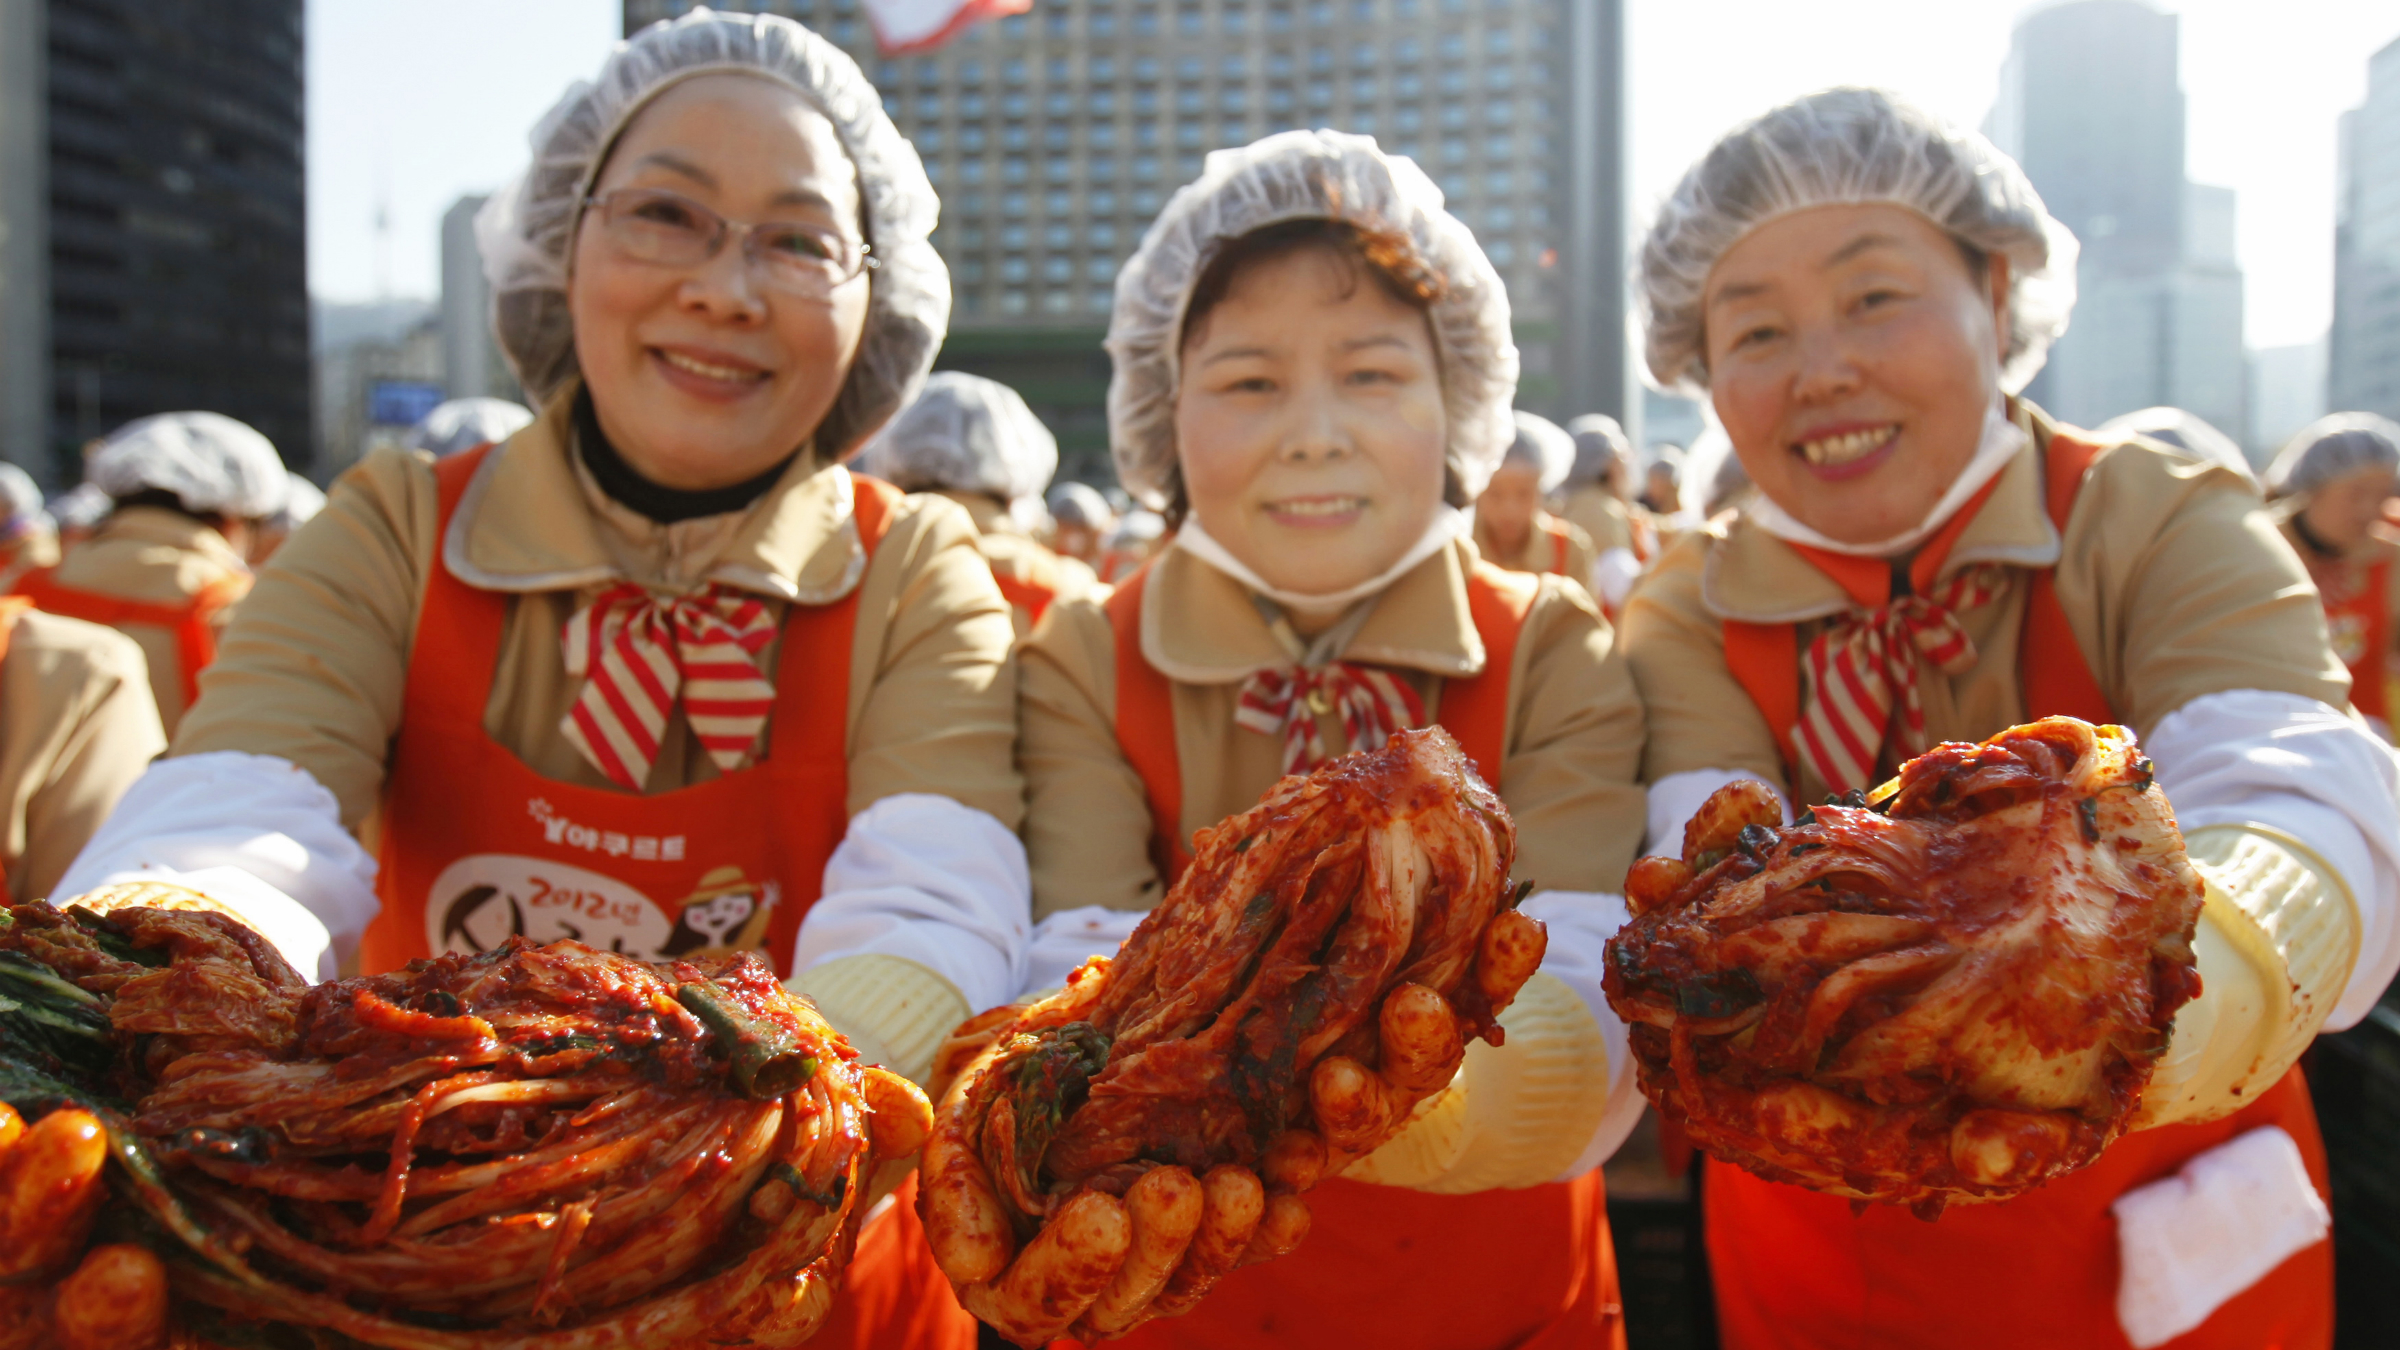 Women pose for photos holding kimchi as they make the traditional Korean side dish consisting of fermented cabbage, at a charity event at Seoul City Hall Plaza November 15, 2012. More than 2,000 volunteers made 270 tonnes of kimchi on Thursday to give away to needy people during the winter season. REUTERS/Kim Hong-Ji